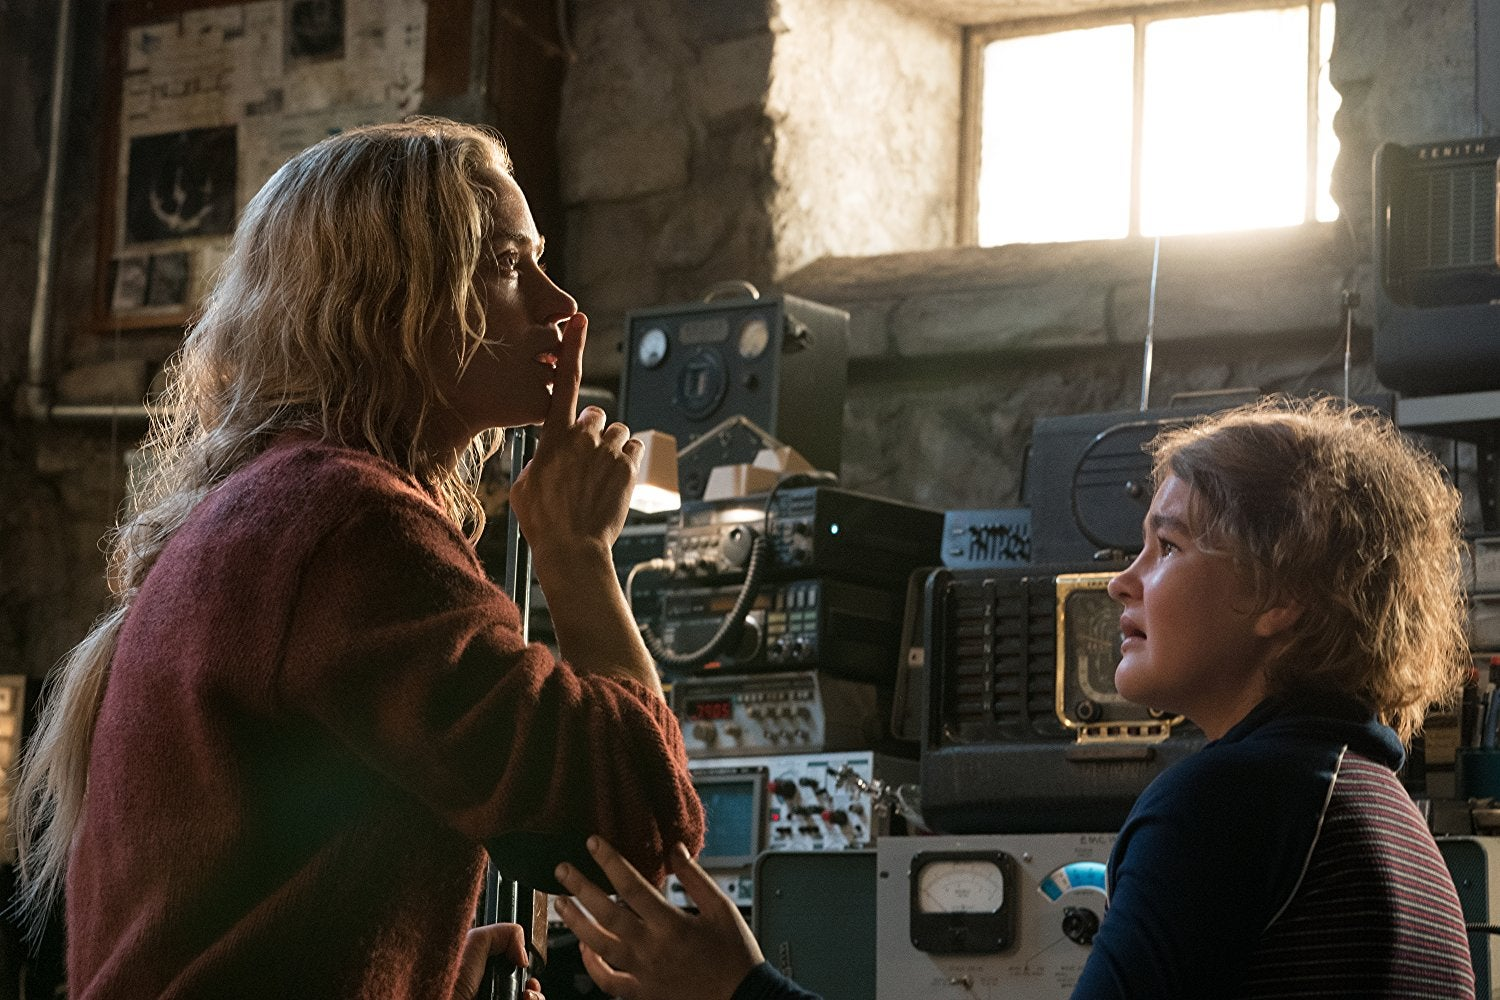 Emily Blunt (left) looks at something, petrified. She makes the shushing motion. Her daughter, played by Millicent Simmonds (right) has a scared expression and reaches for her with one arm.